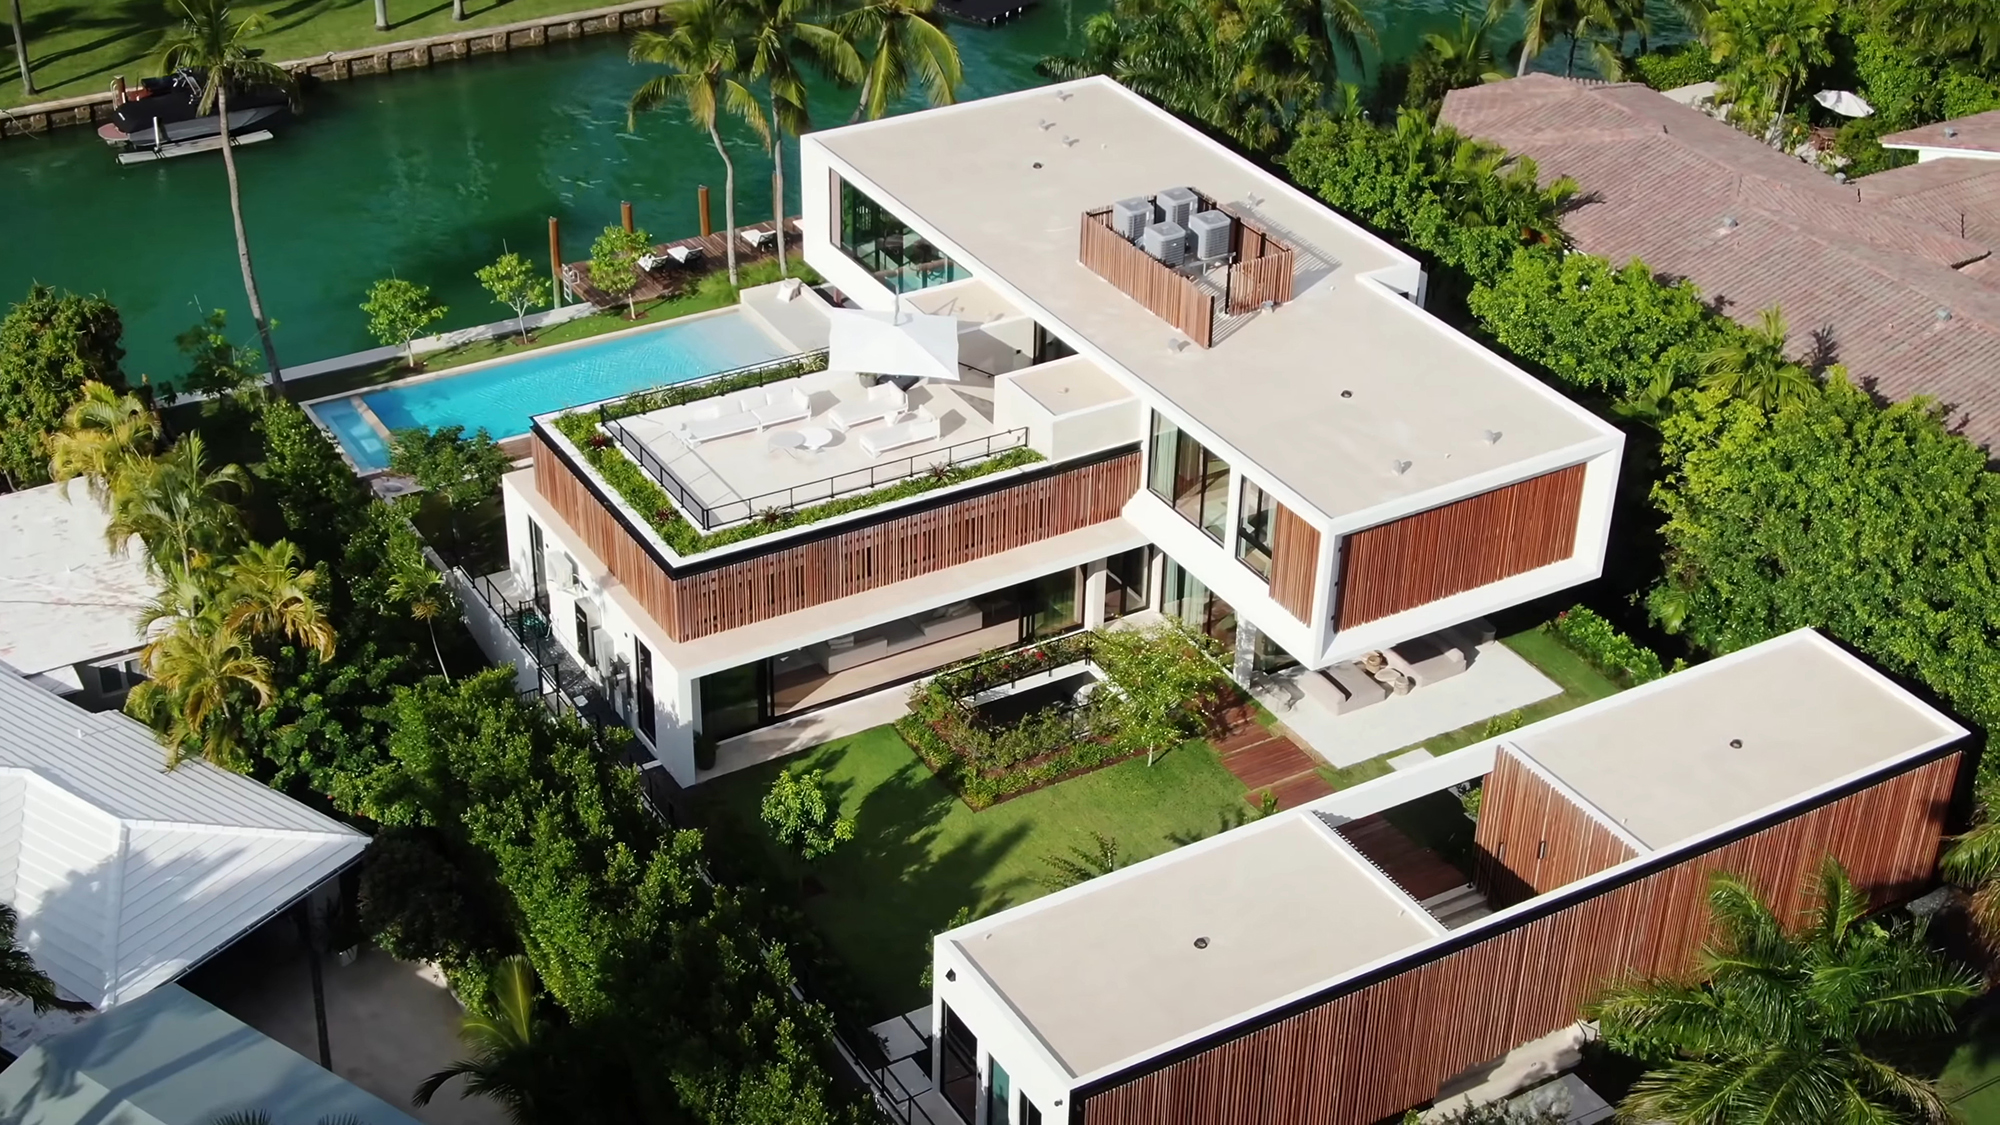 Ariel view of this fantastic contemporary home on a canal in Florida with flat roof and rooftop deck with planters.